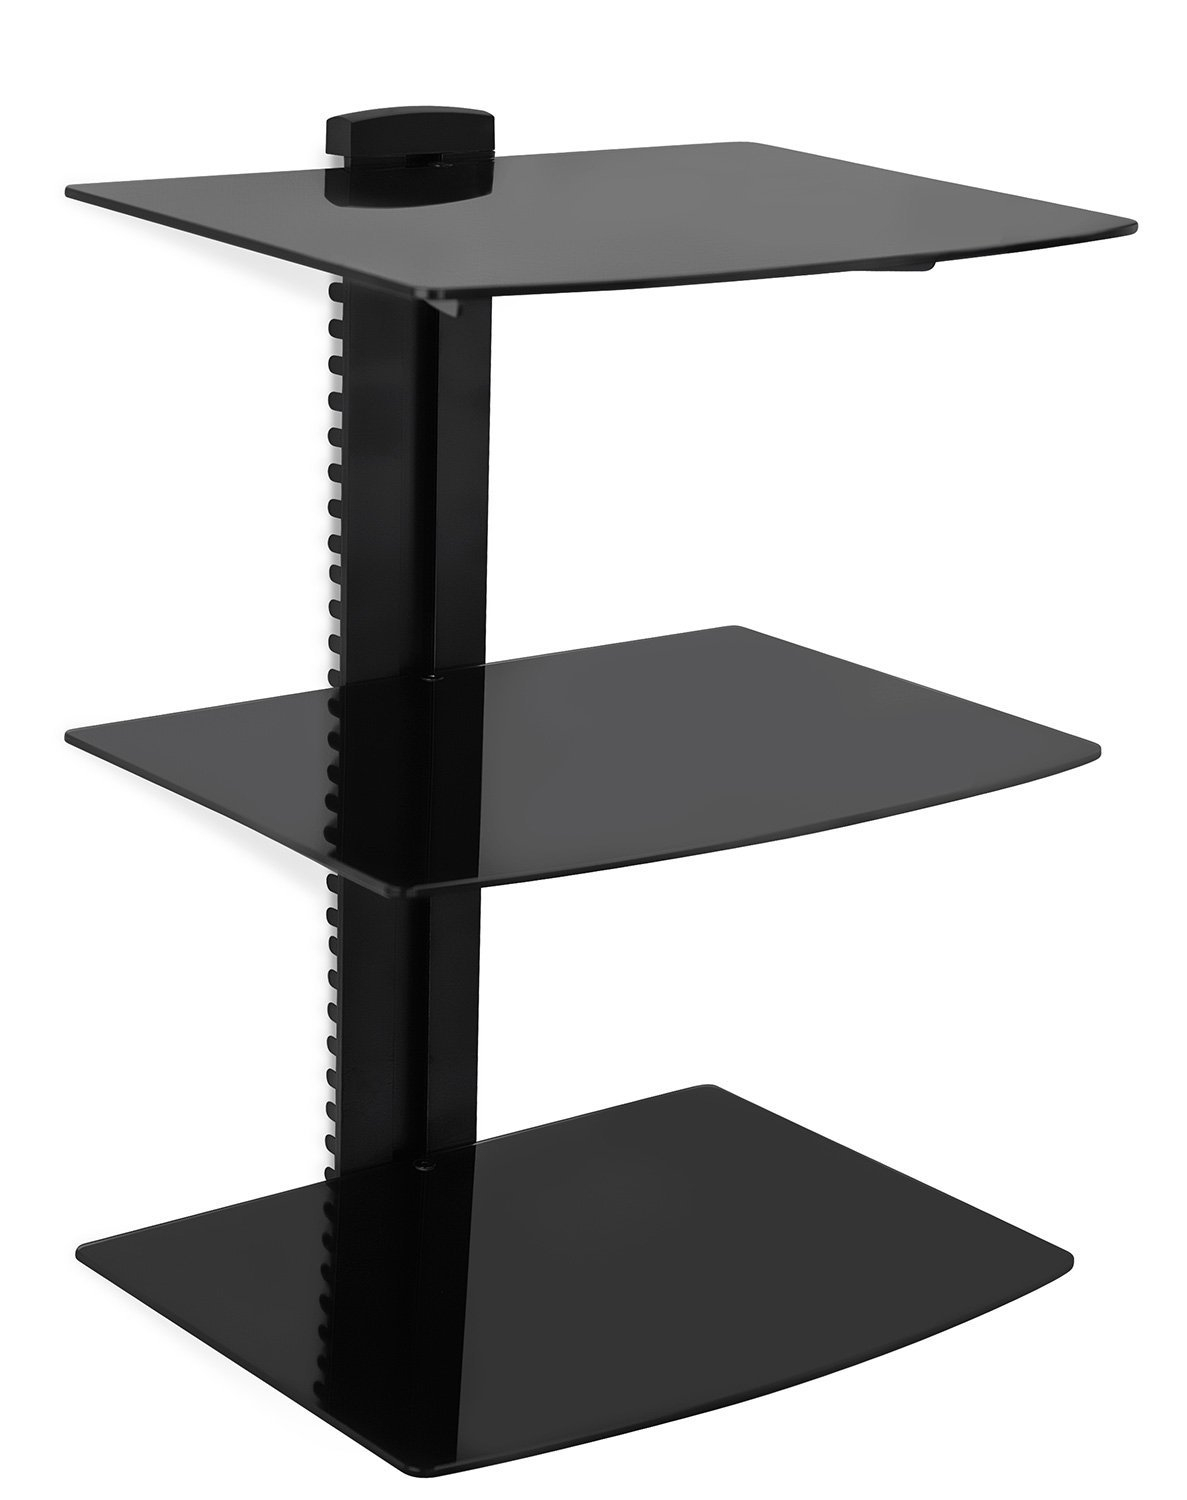 Amazon Mount It Wall Mounted Av Component Shelving System Pertaining To Wall Mounted Black Glass Shelves (View 2 of 15)